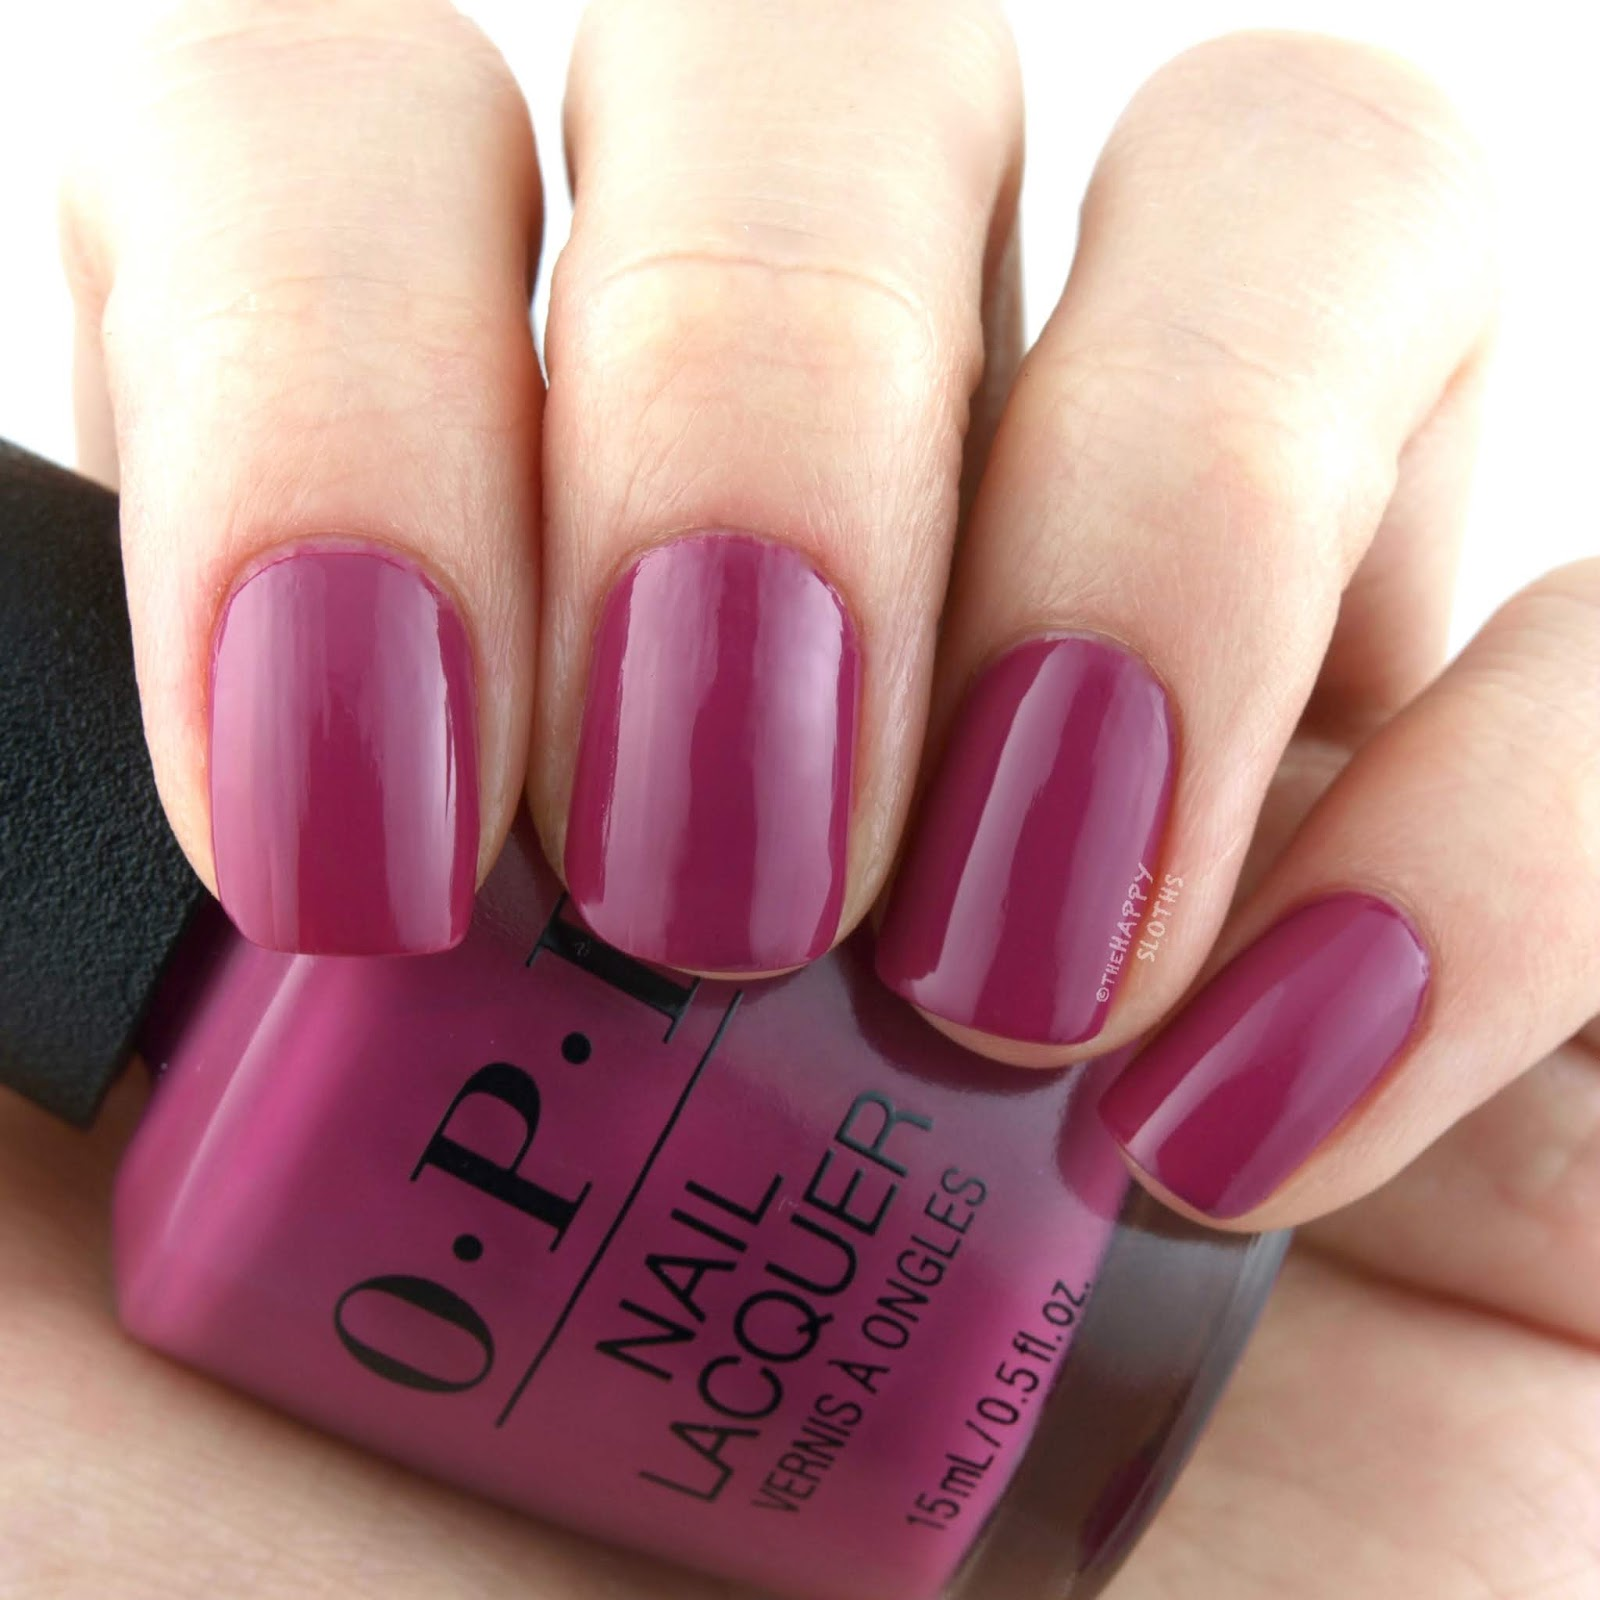 OPI Spring 2019 Tokyo Collection | Hurry-juku Get this Color!: Review and Swatches